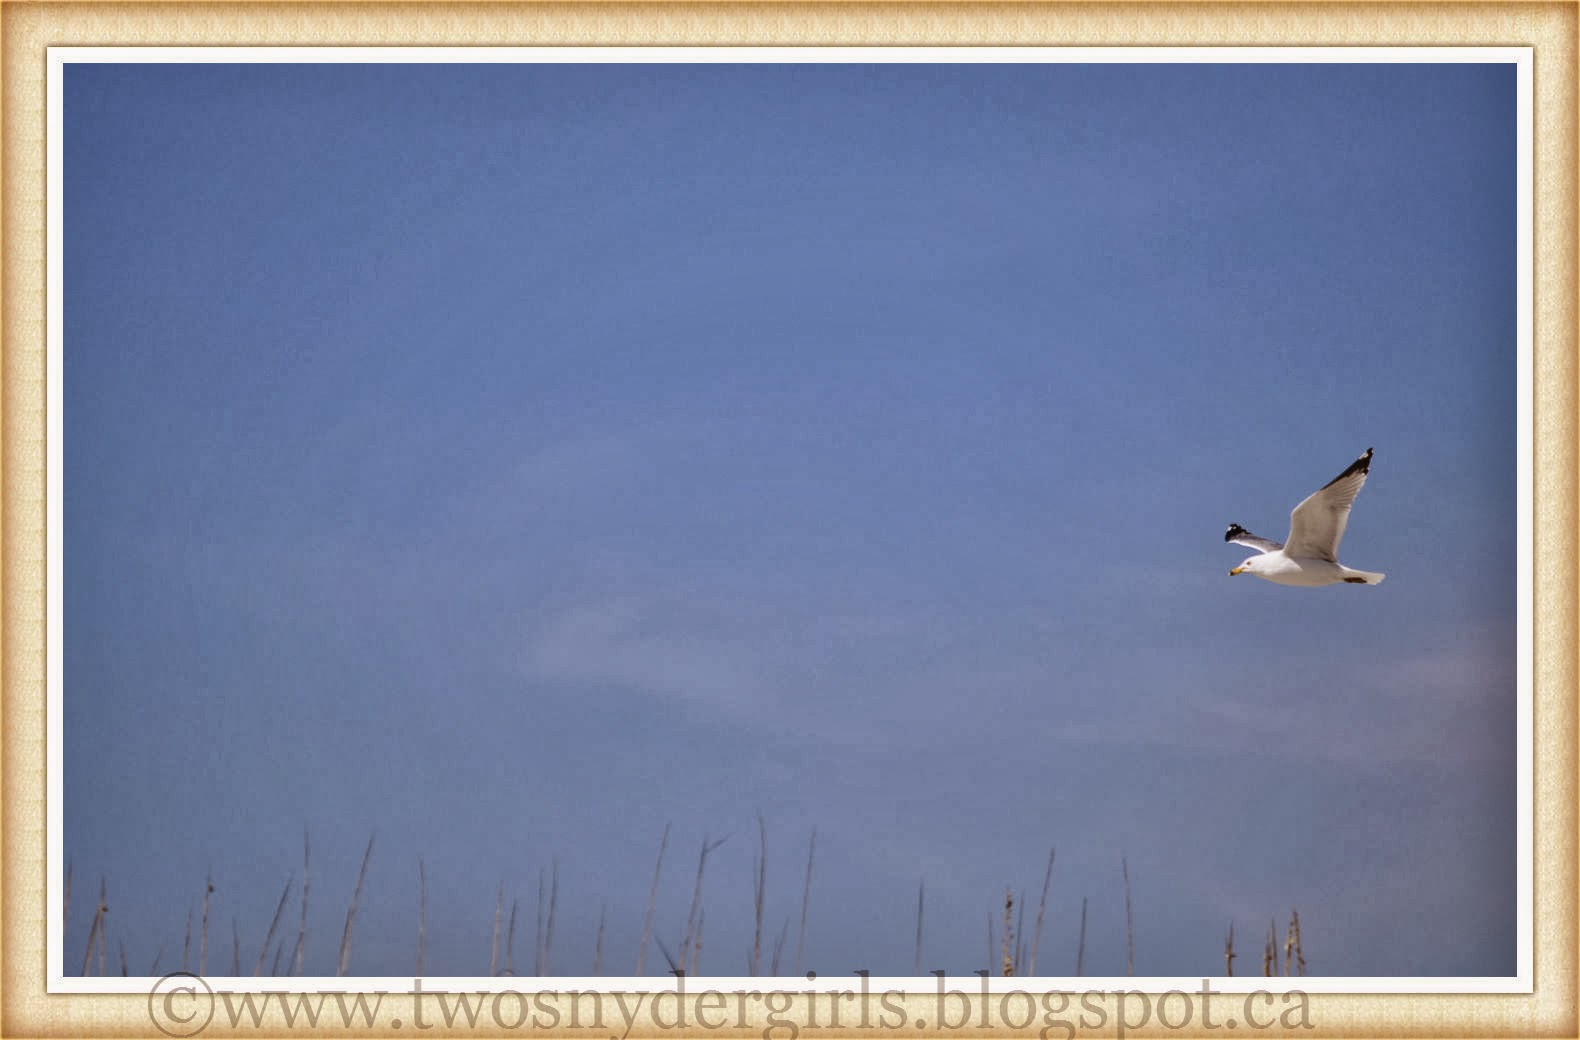 Single Seagull in flight